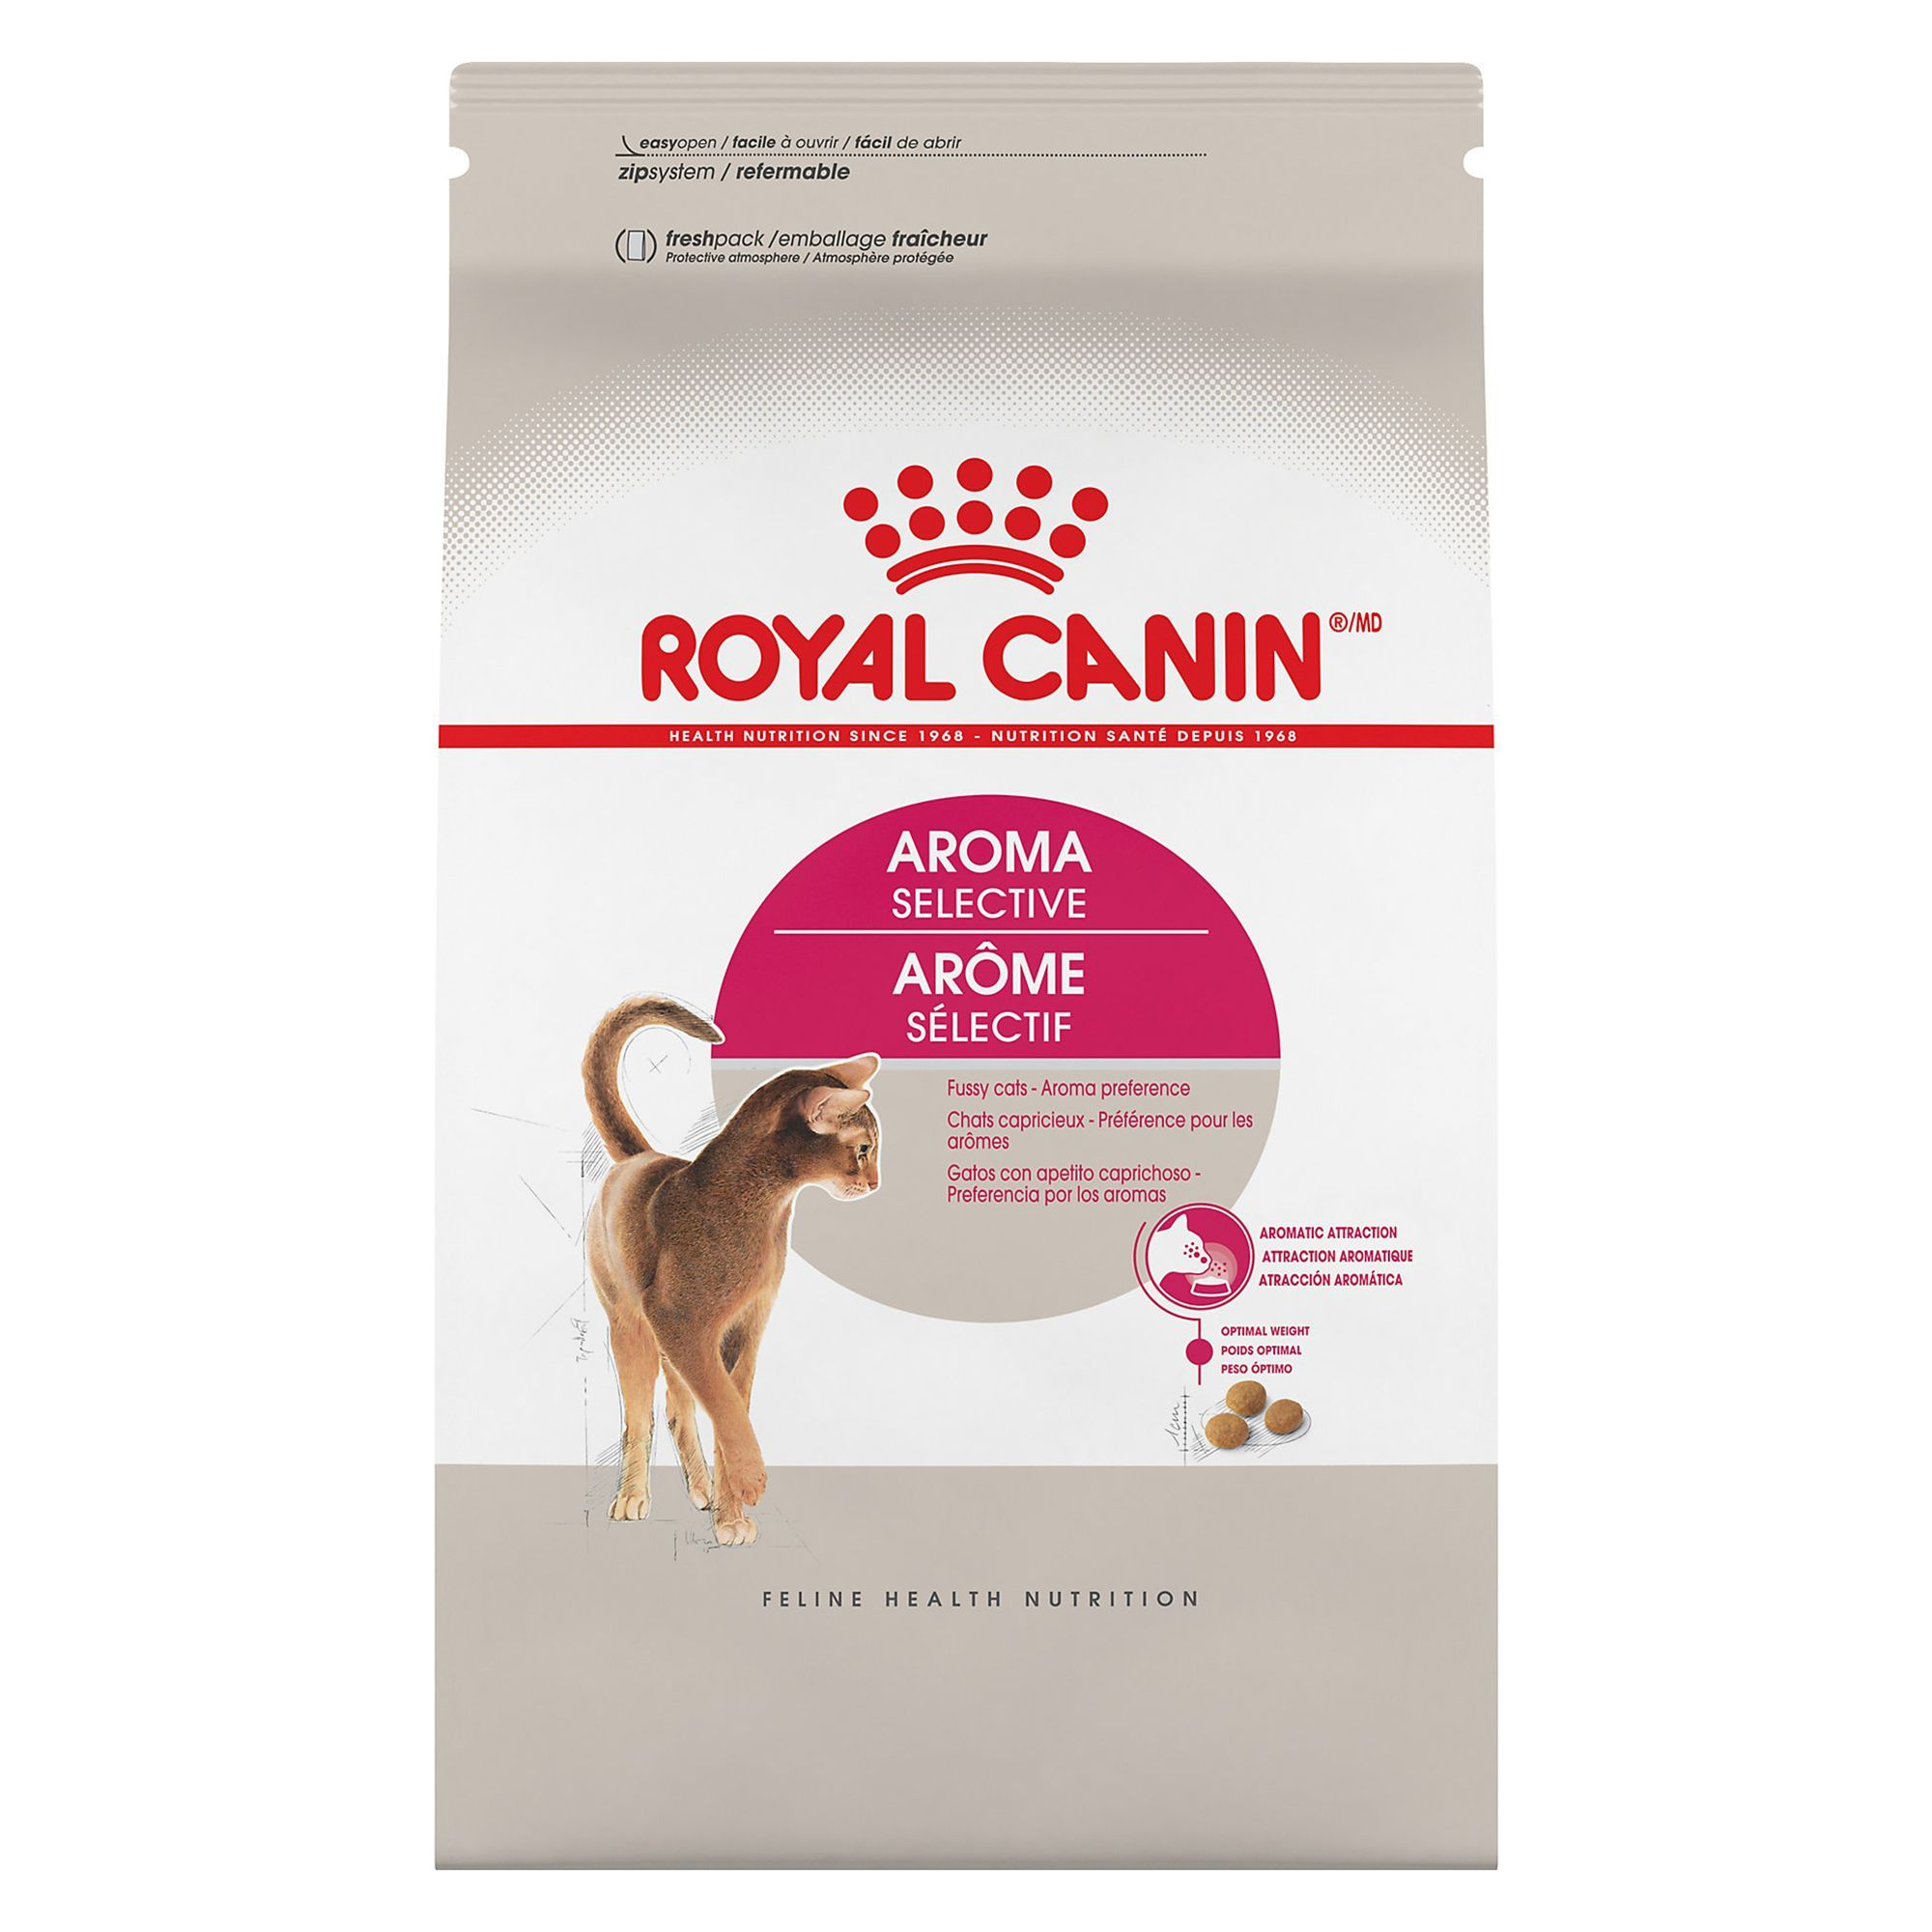 Royal Canin Feline Health Nutrition Selective 31 Aromatic Attraction Cat Food Cat Food Reviews Feline Health Dry Cat Food